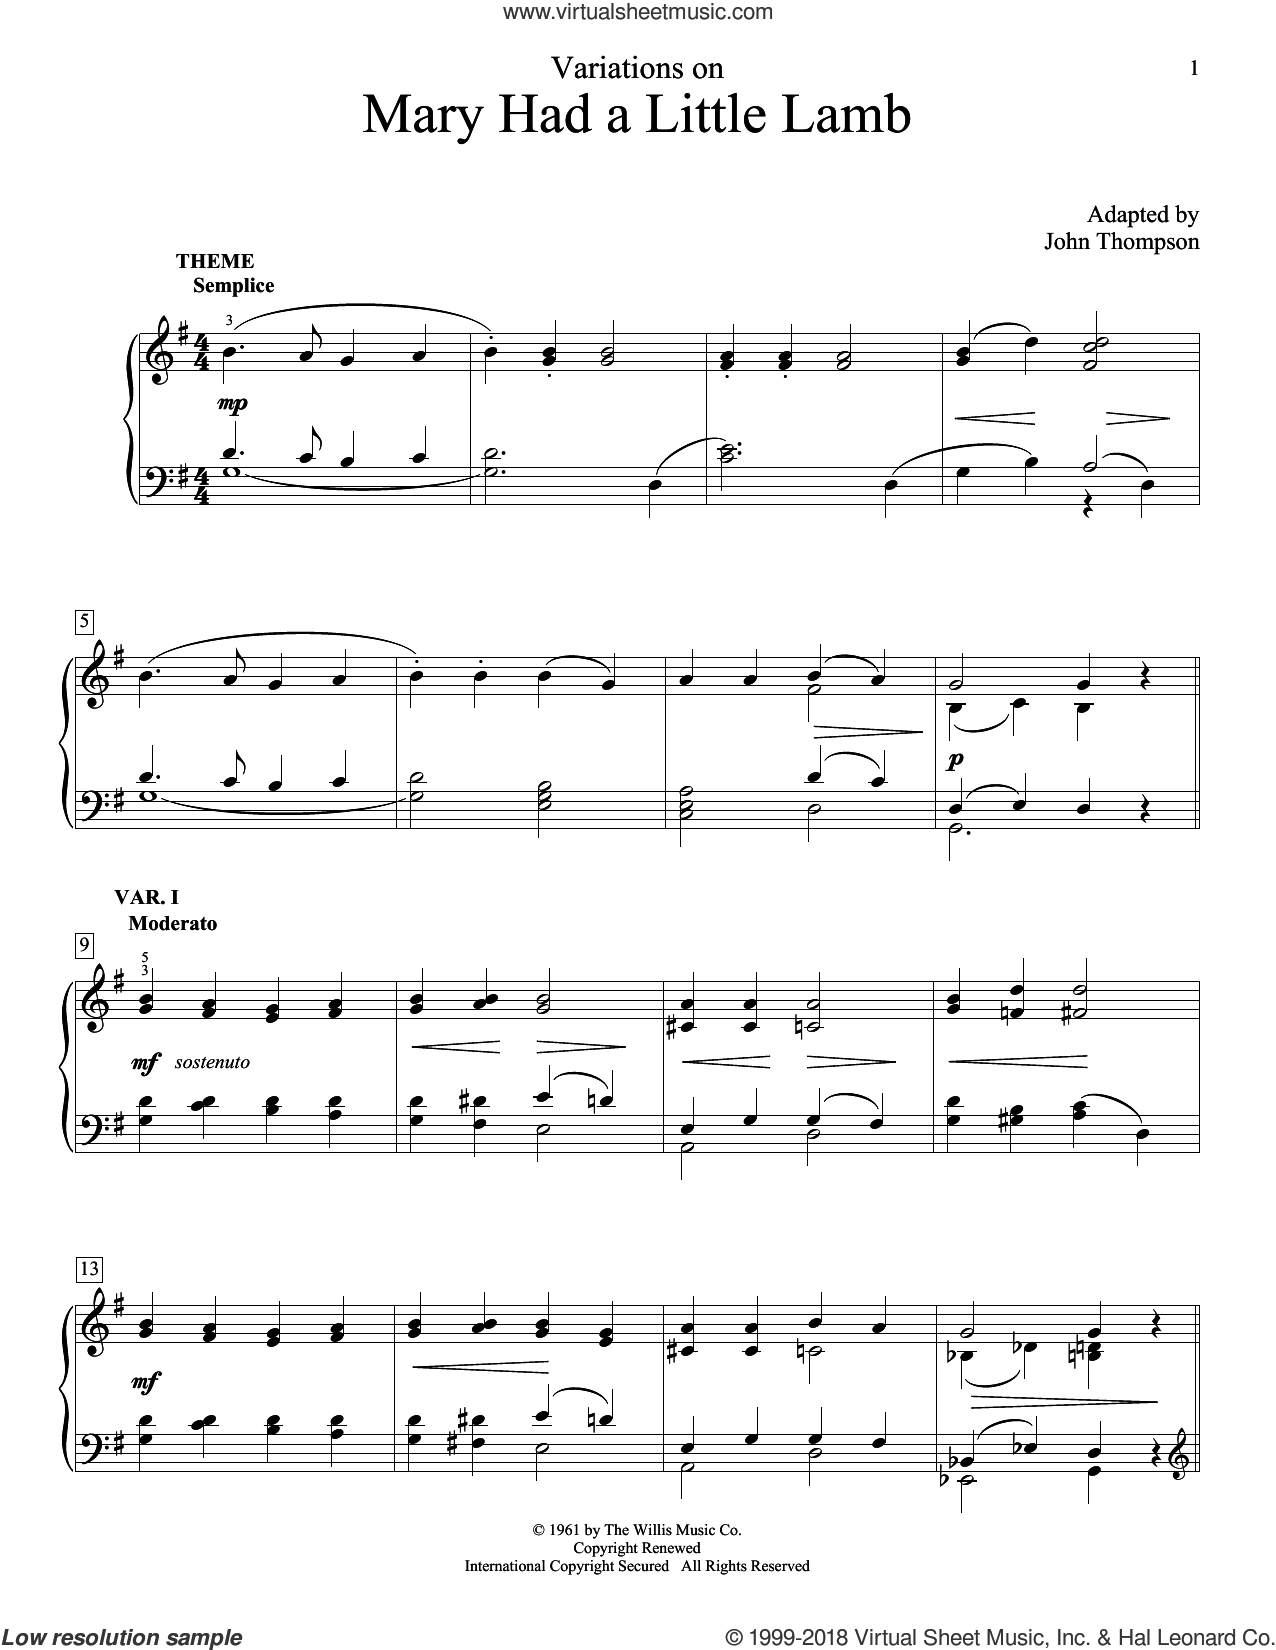 Variations On Mary Had A Little Lamb sheet music for piano solo (elementary) by John Thompson